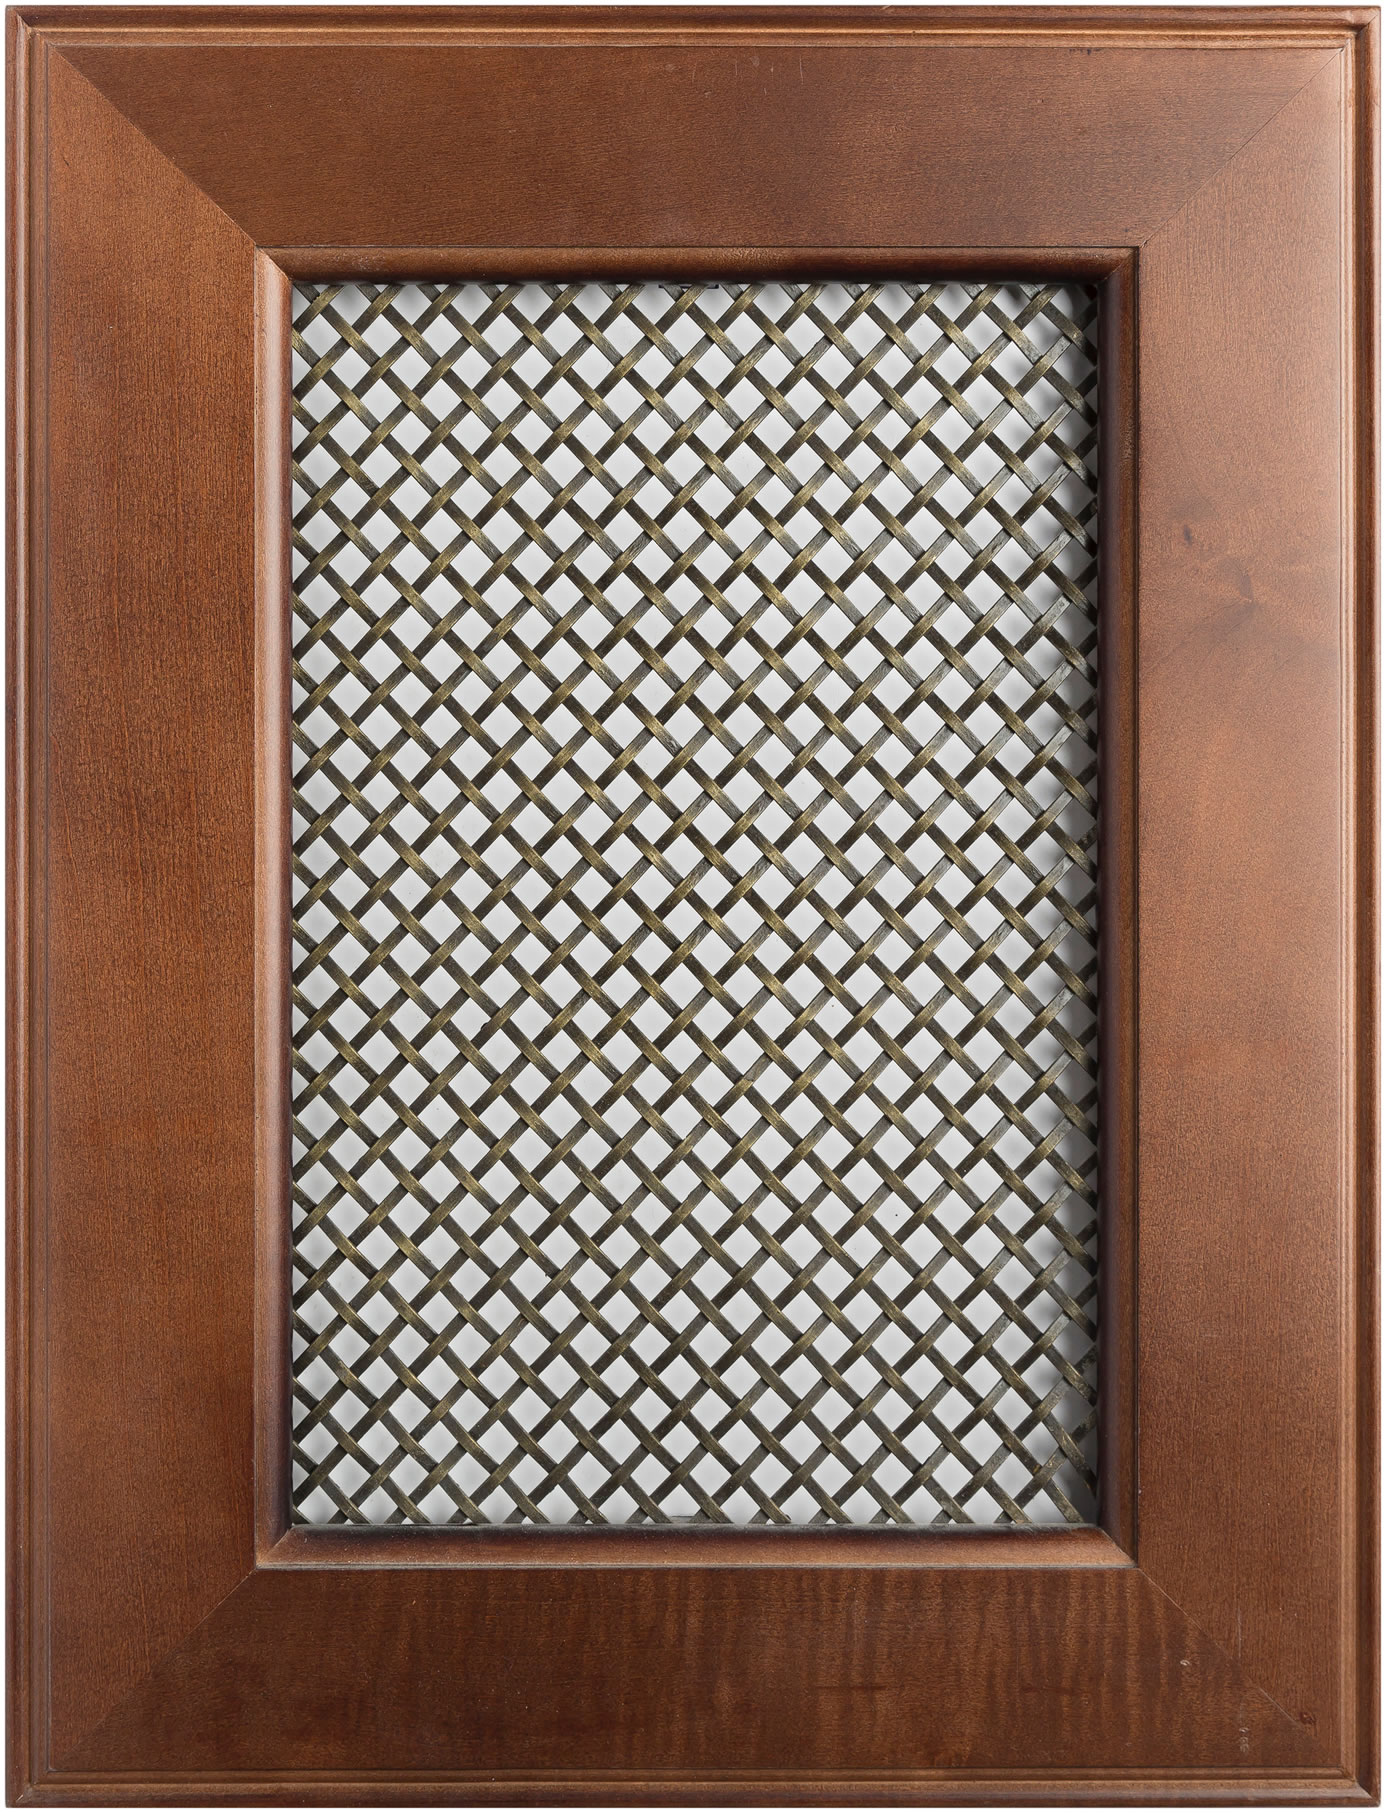 Wire Mesh - Wood Hollow Cabinets